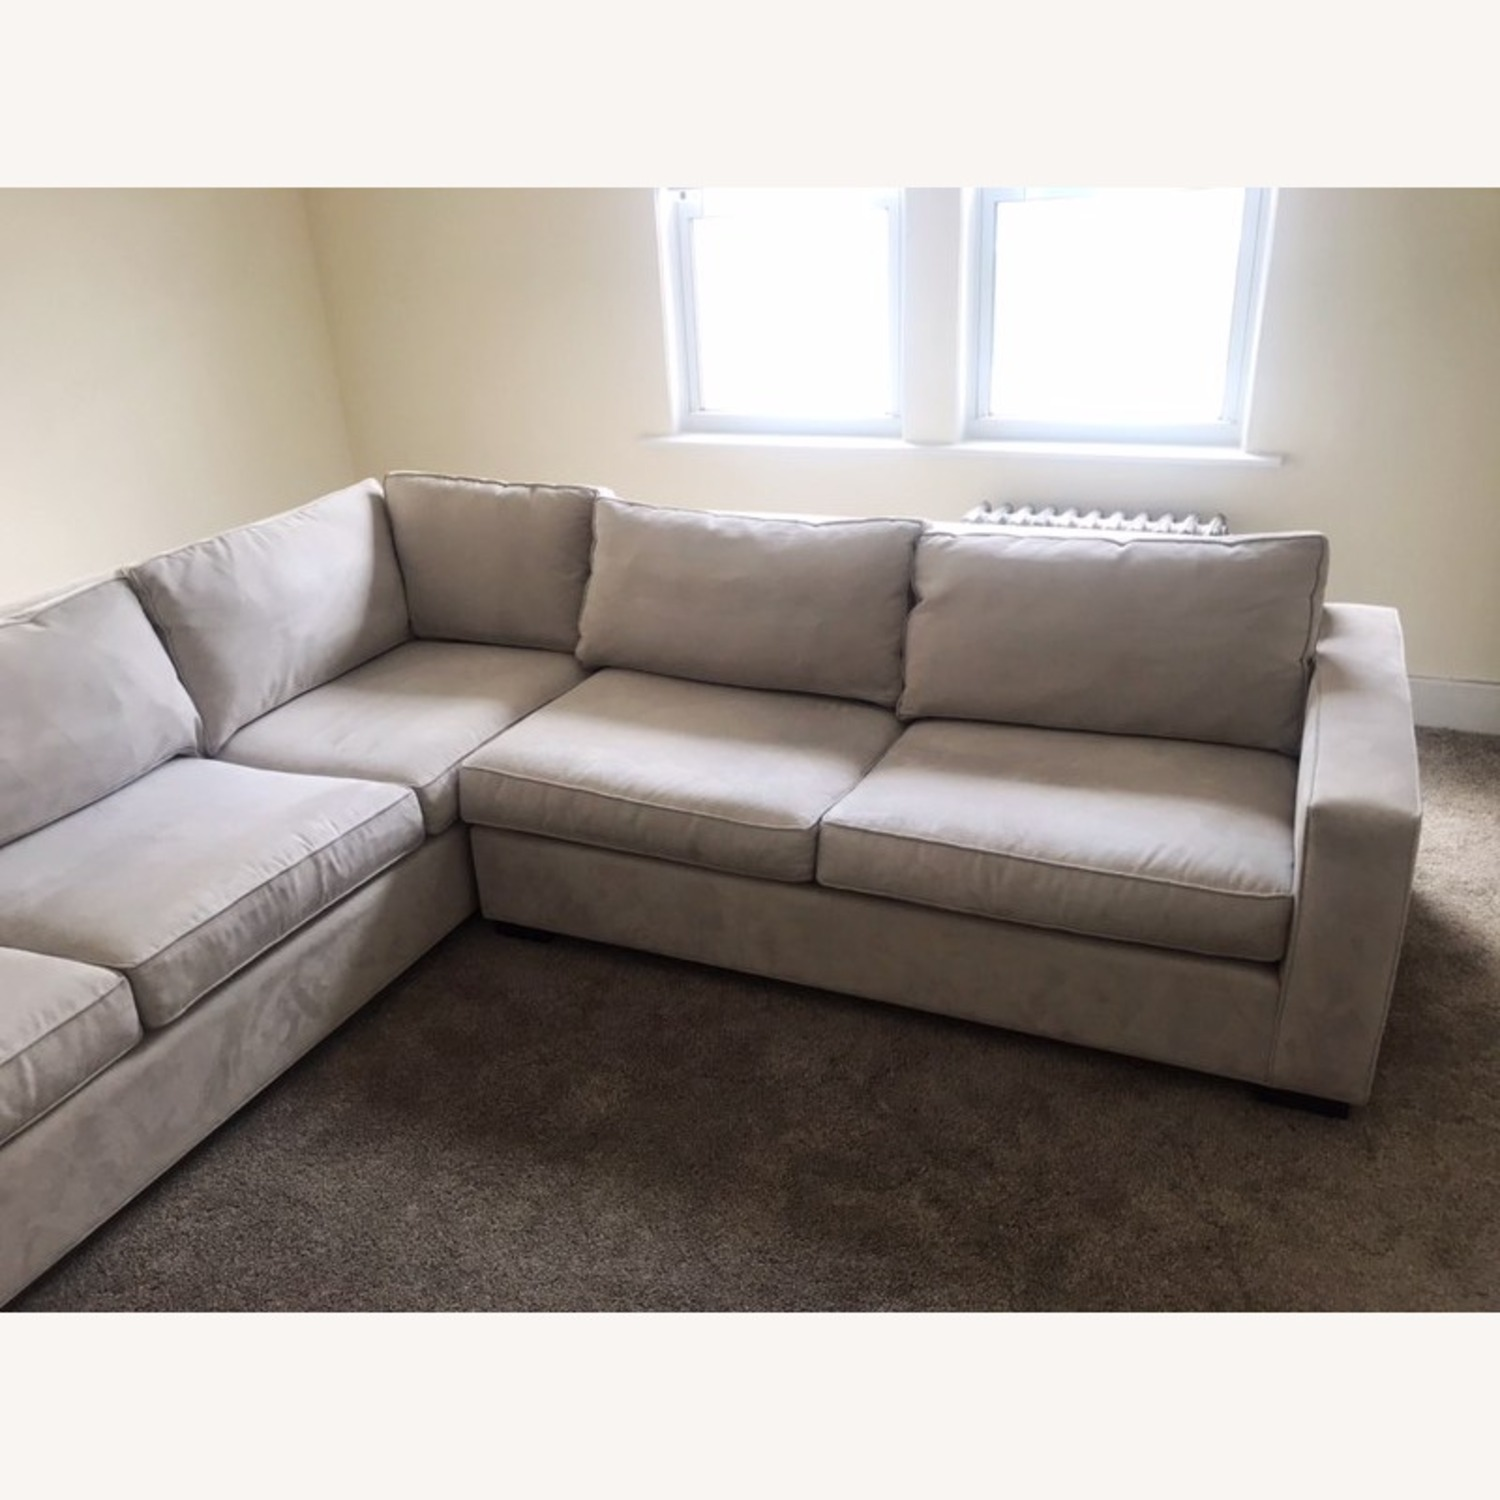 Mitchell Gold + Bob William 2 Piece Sectional Sofa - image-5